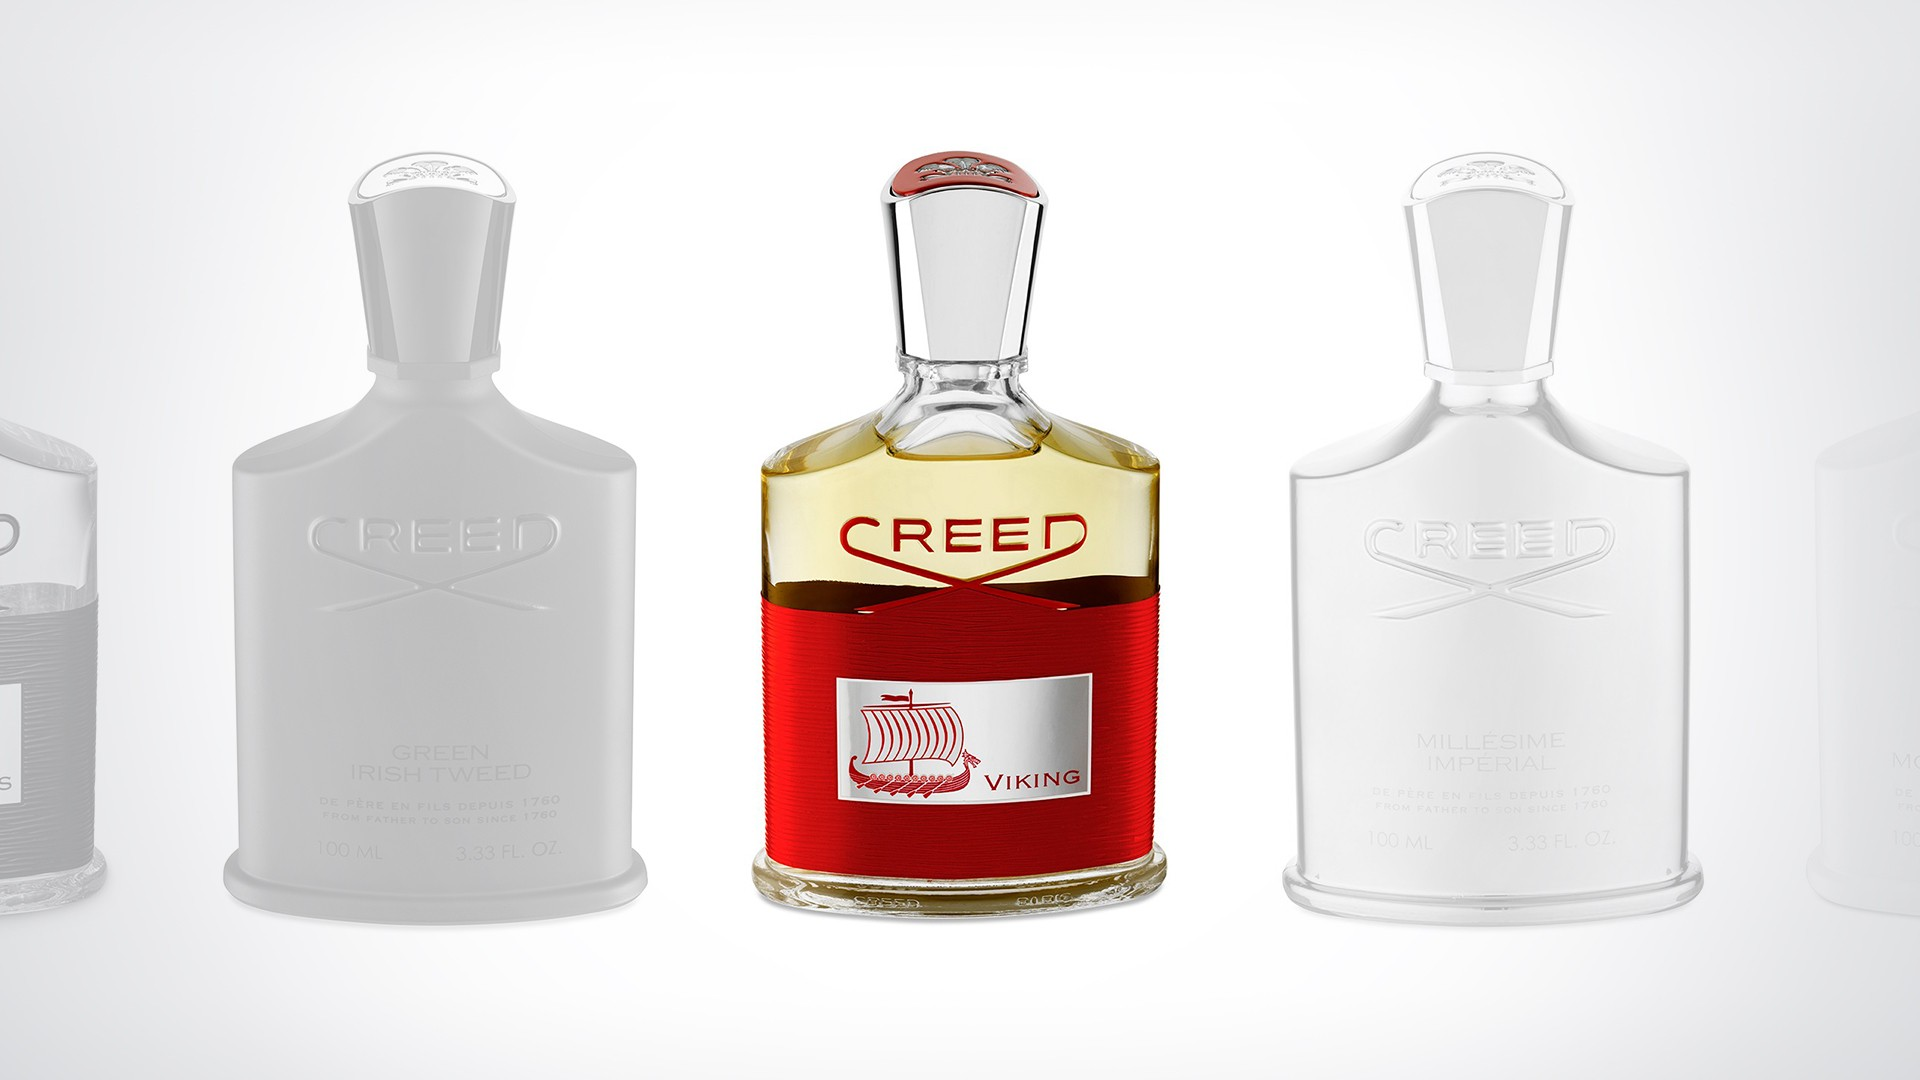 Creed Viking Fragrance